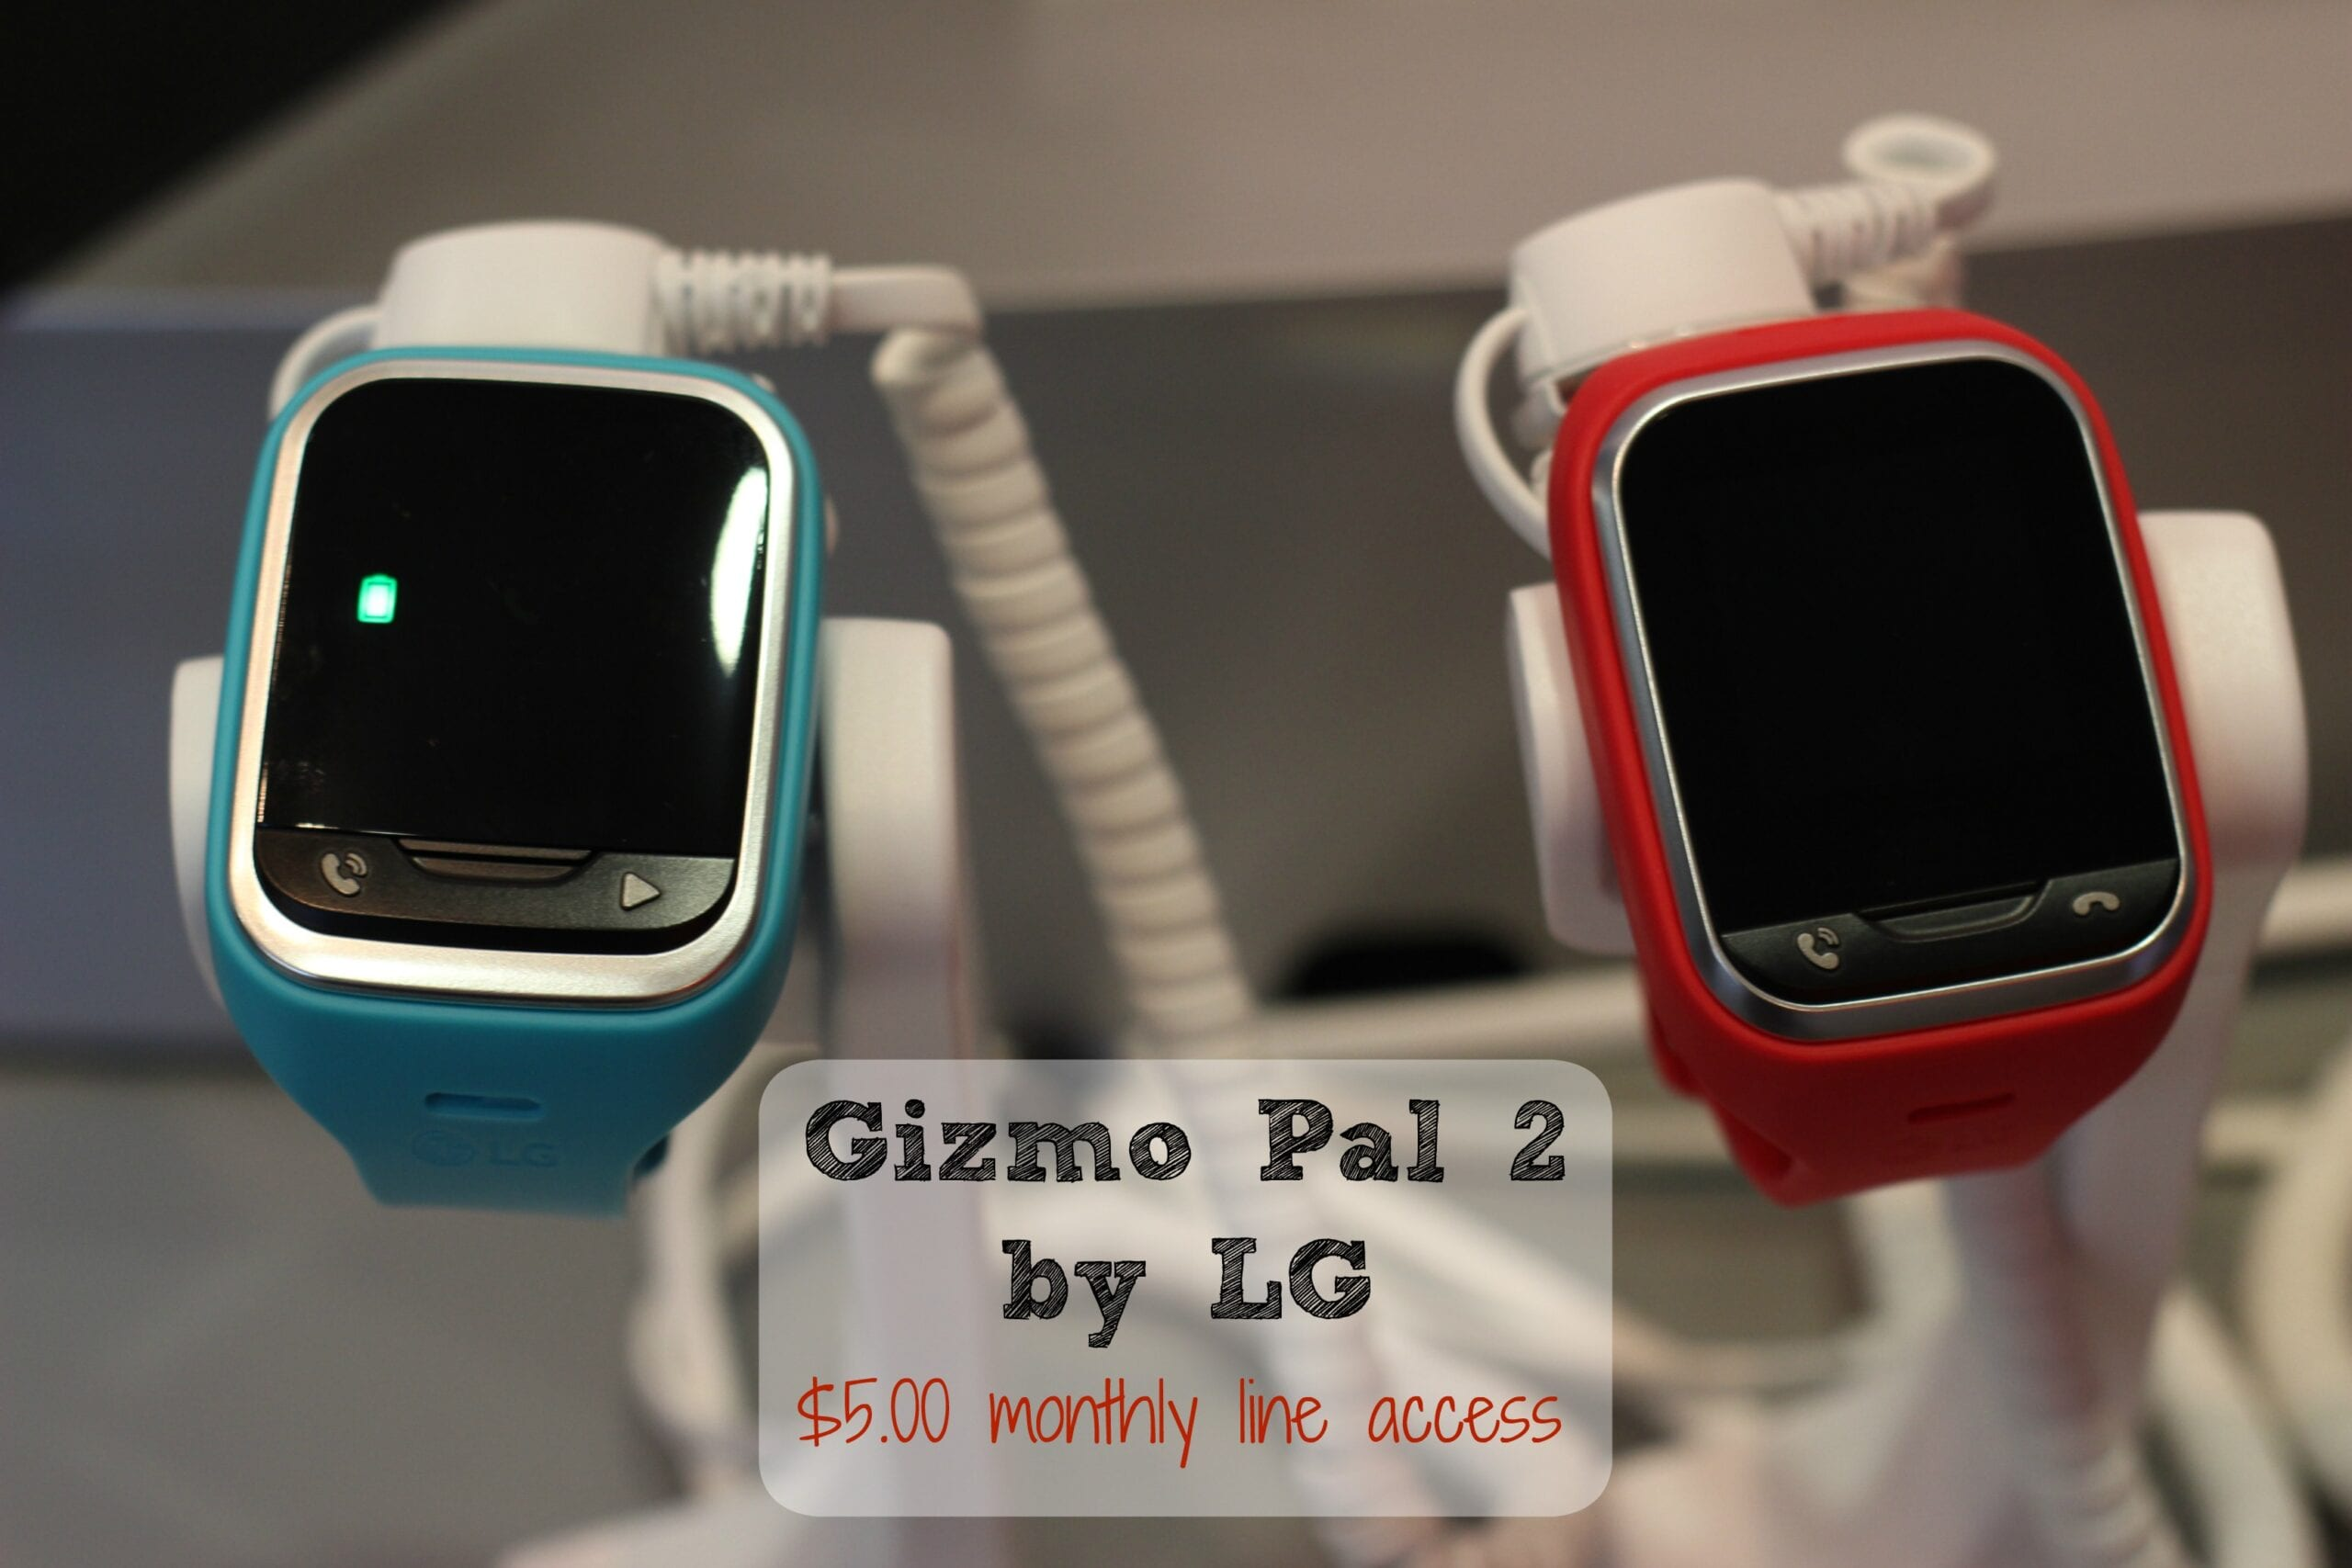 Verizon Tech Gift Ideas - Gizmo Pal 2